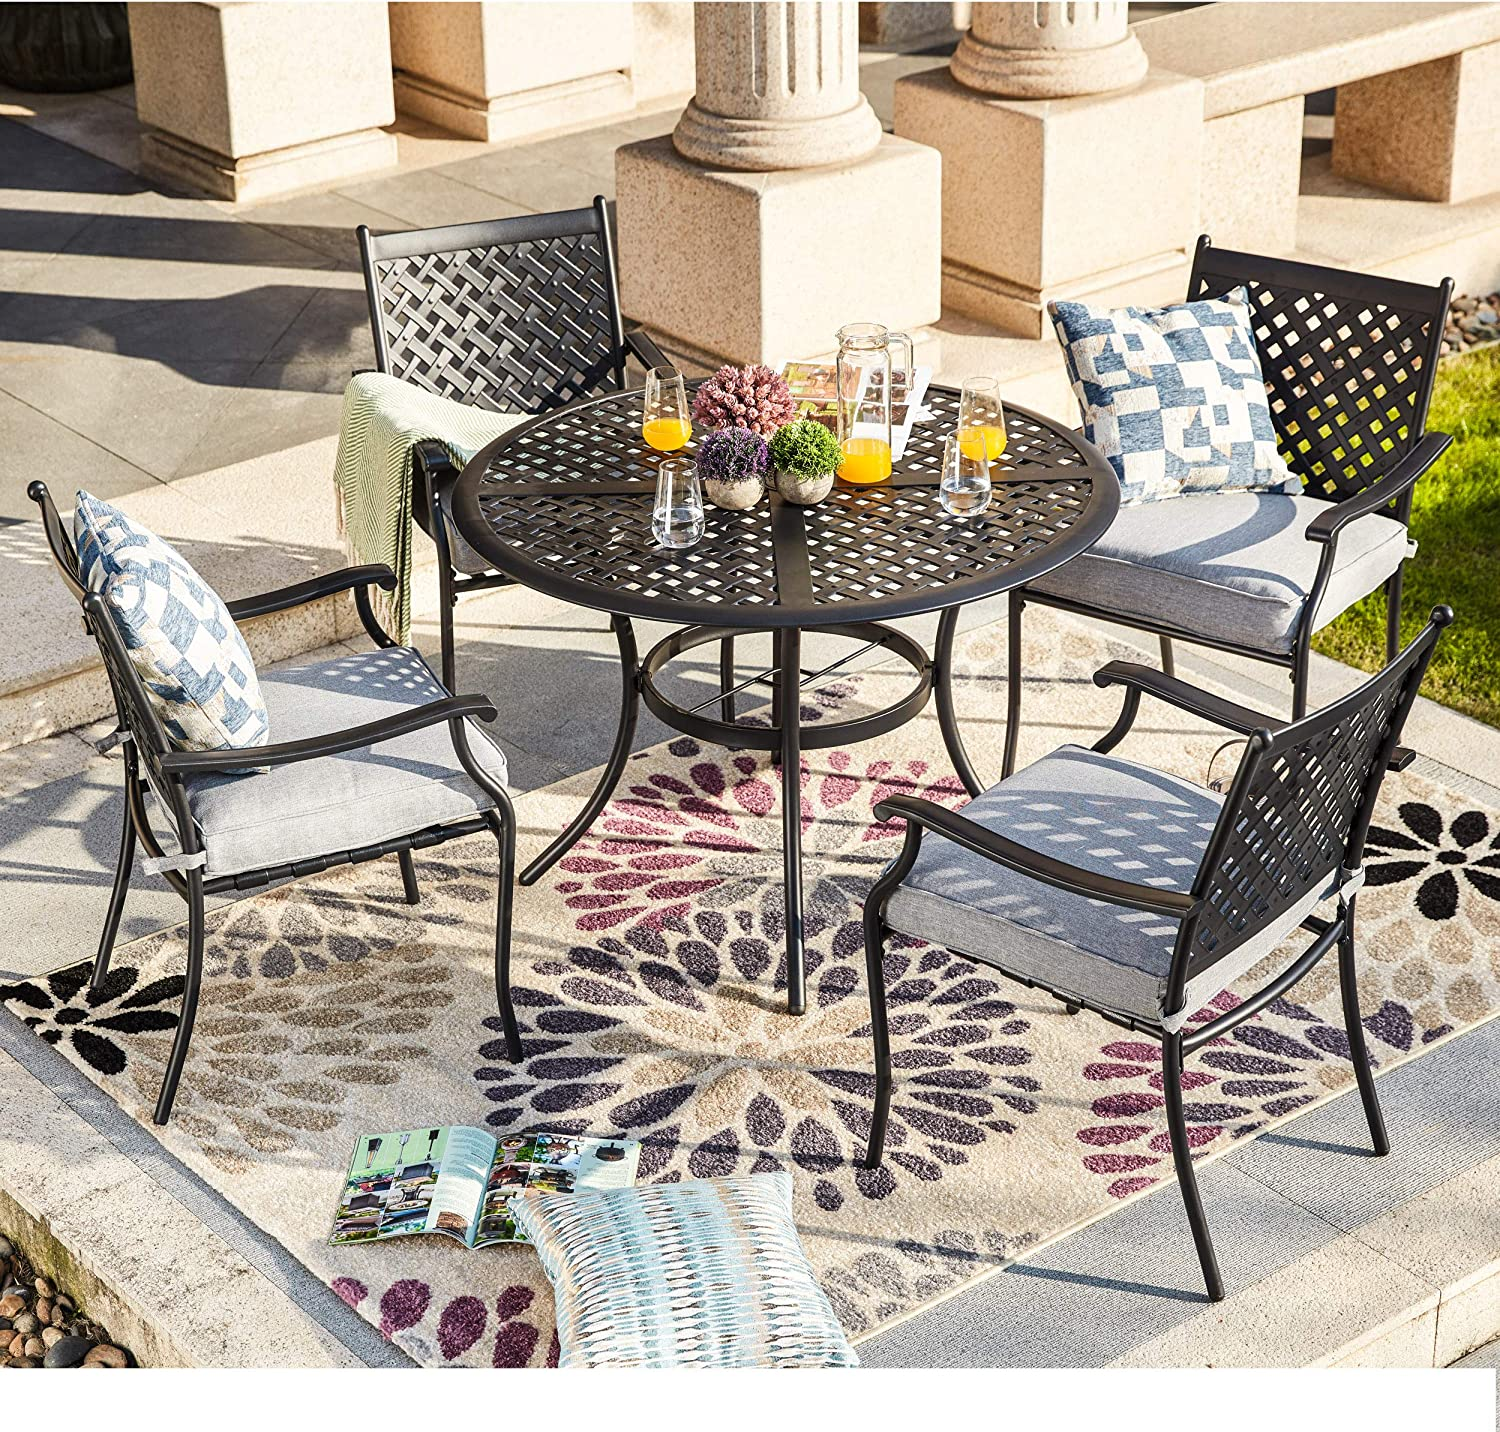 LOKATSE HOME 5 Piece Outdoor Patio Metal Dining Set with 4 Iron Arm Chairs with Seat Cushions and 1 Table with Umbrella Hole, Grey